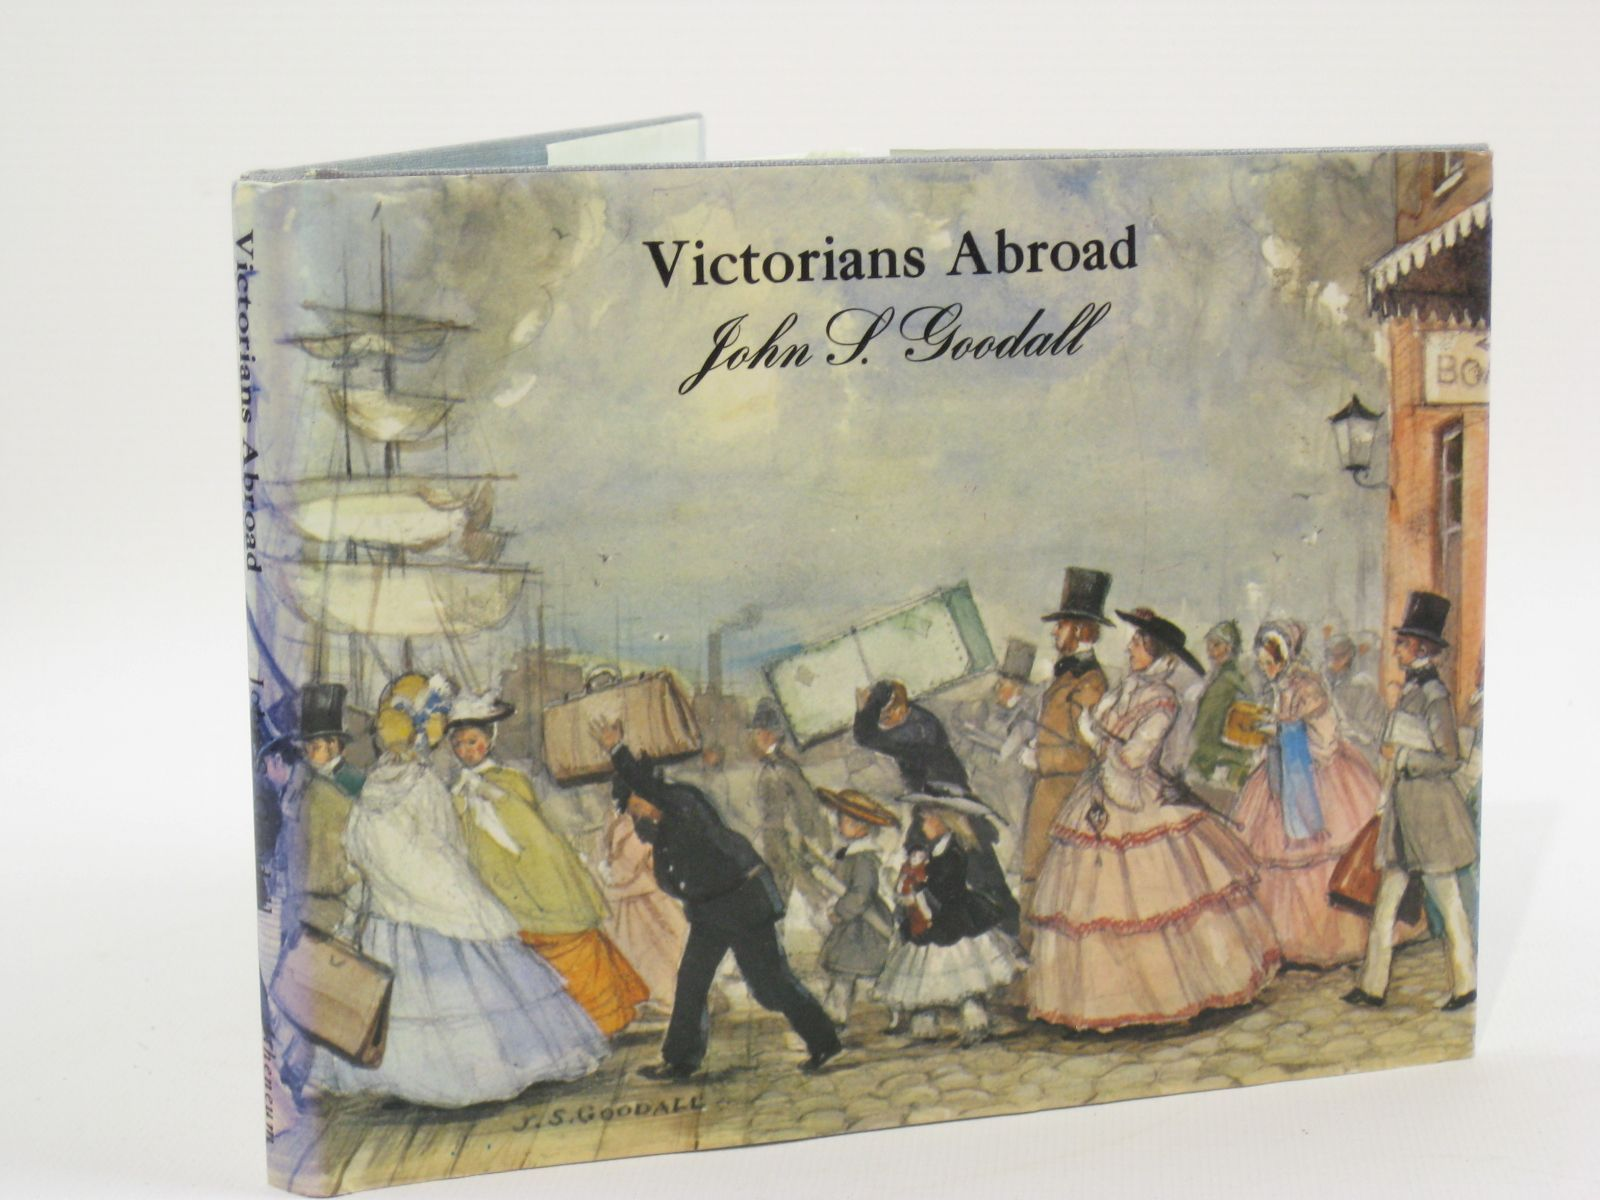 Photo of VICTORIANS ABROAD written by Goodall, John S. illustrated by Goodall, John S. published by Atheneum (STOCK CODE: 1407097)  for sale by Stella & Rose's Books